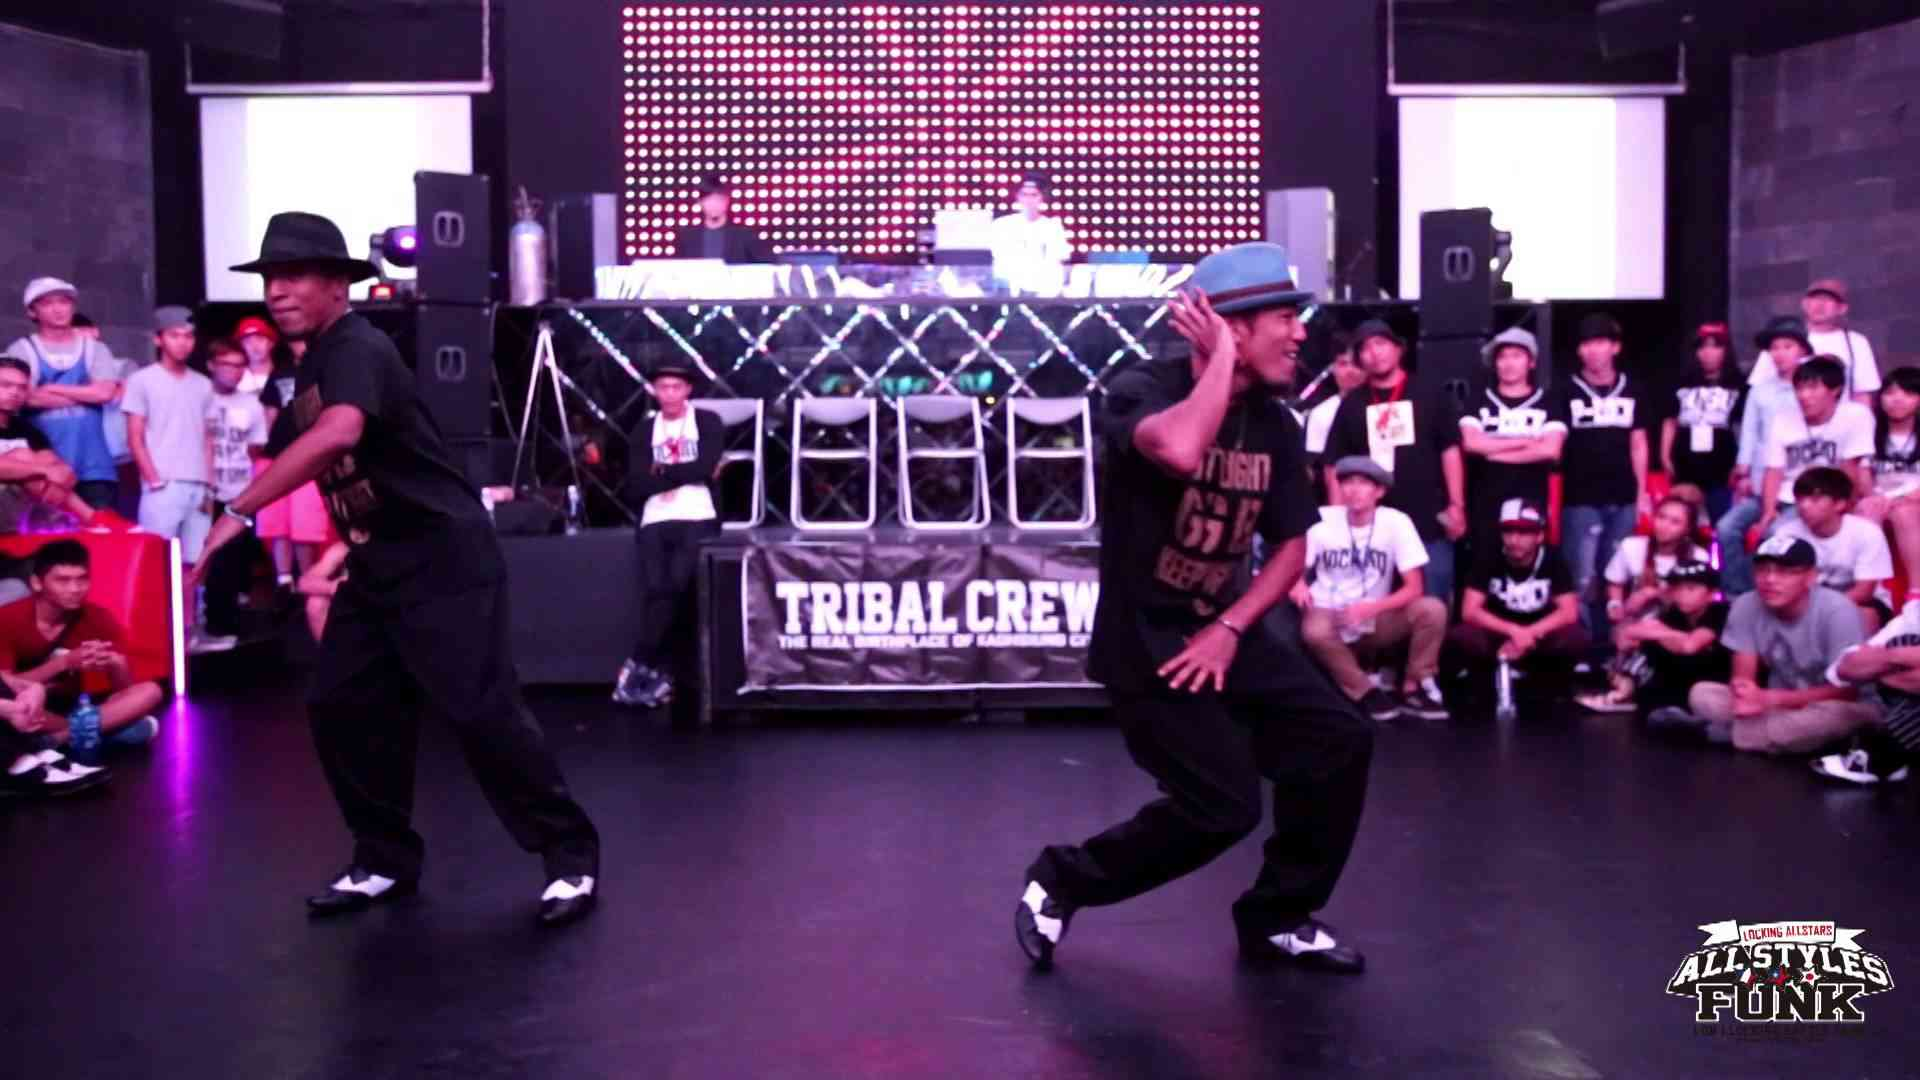 Judge Showcase - Go Go Brothers | 20130831 ALL STYLEs FUNK Vol.1 - YouTube